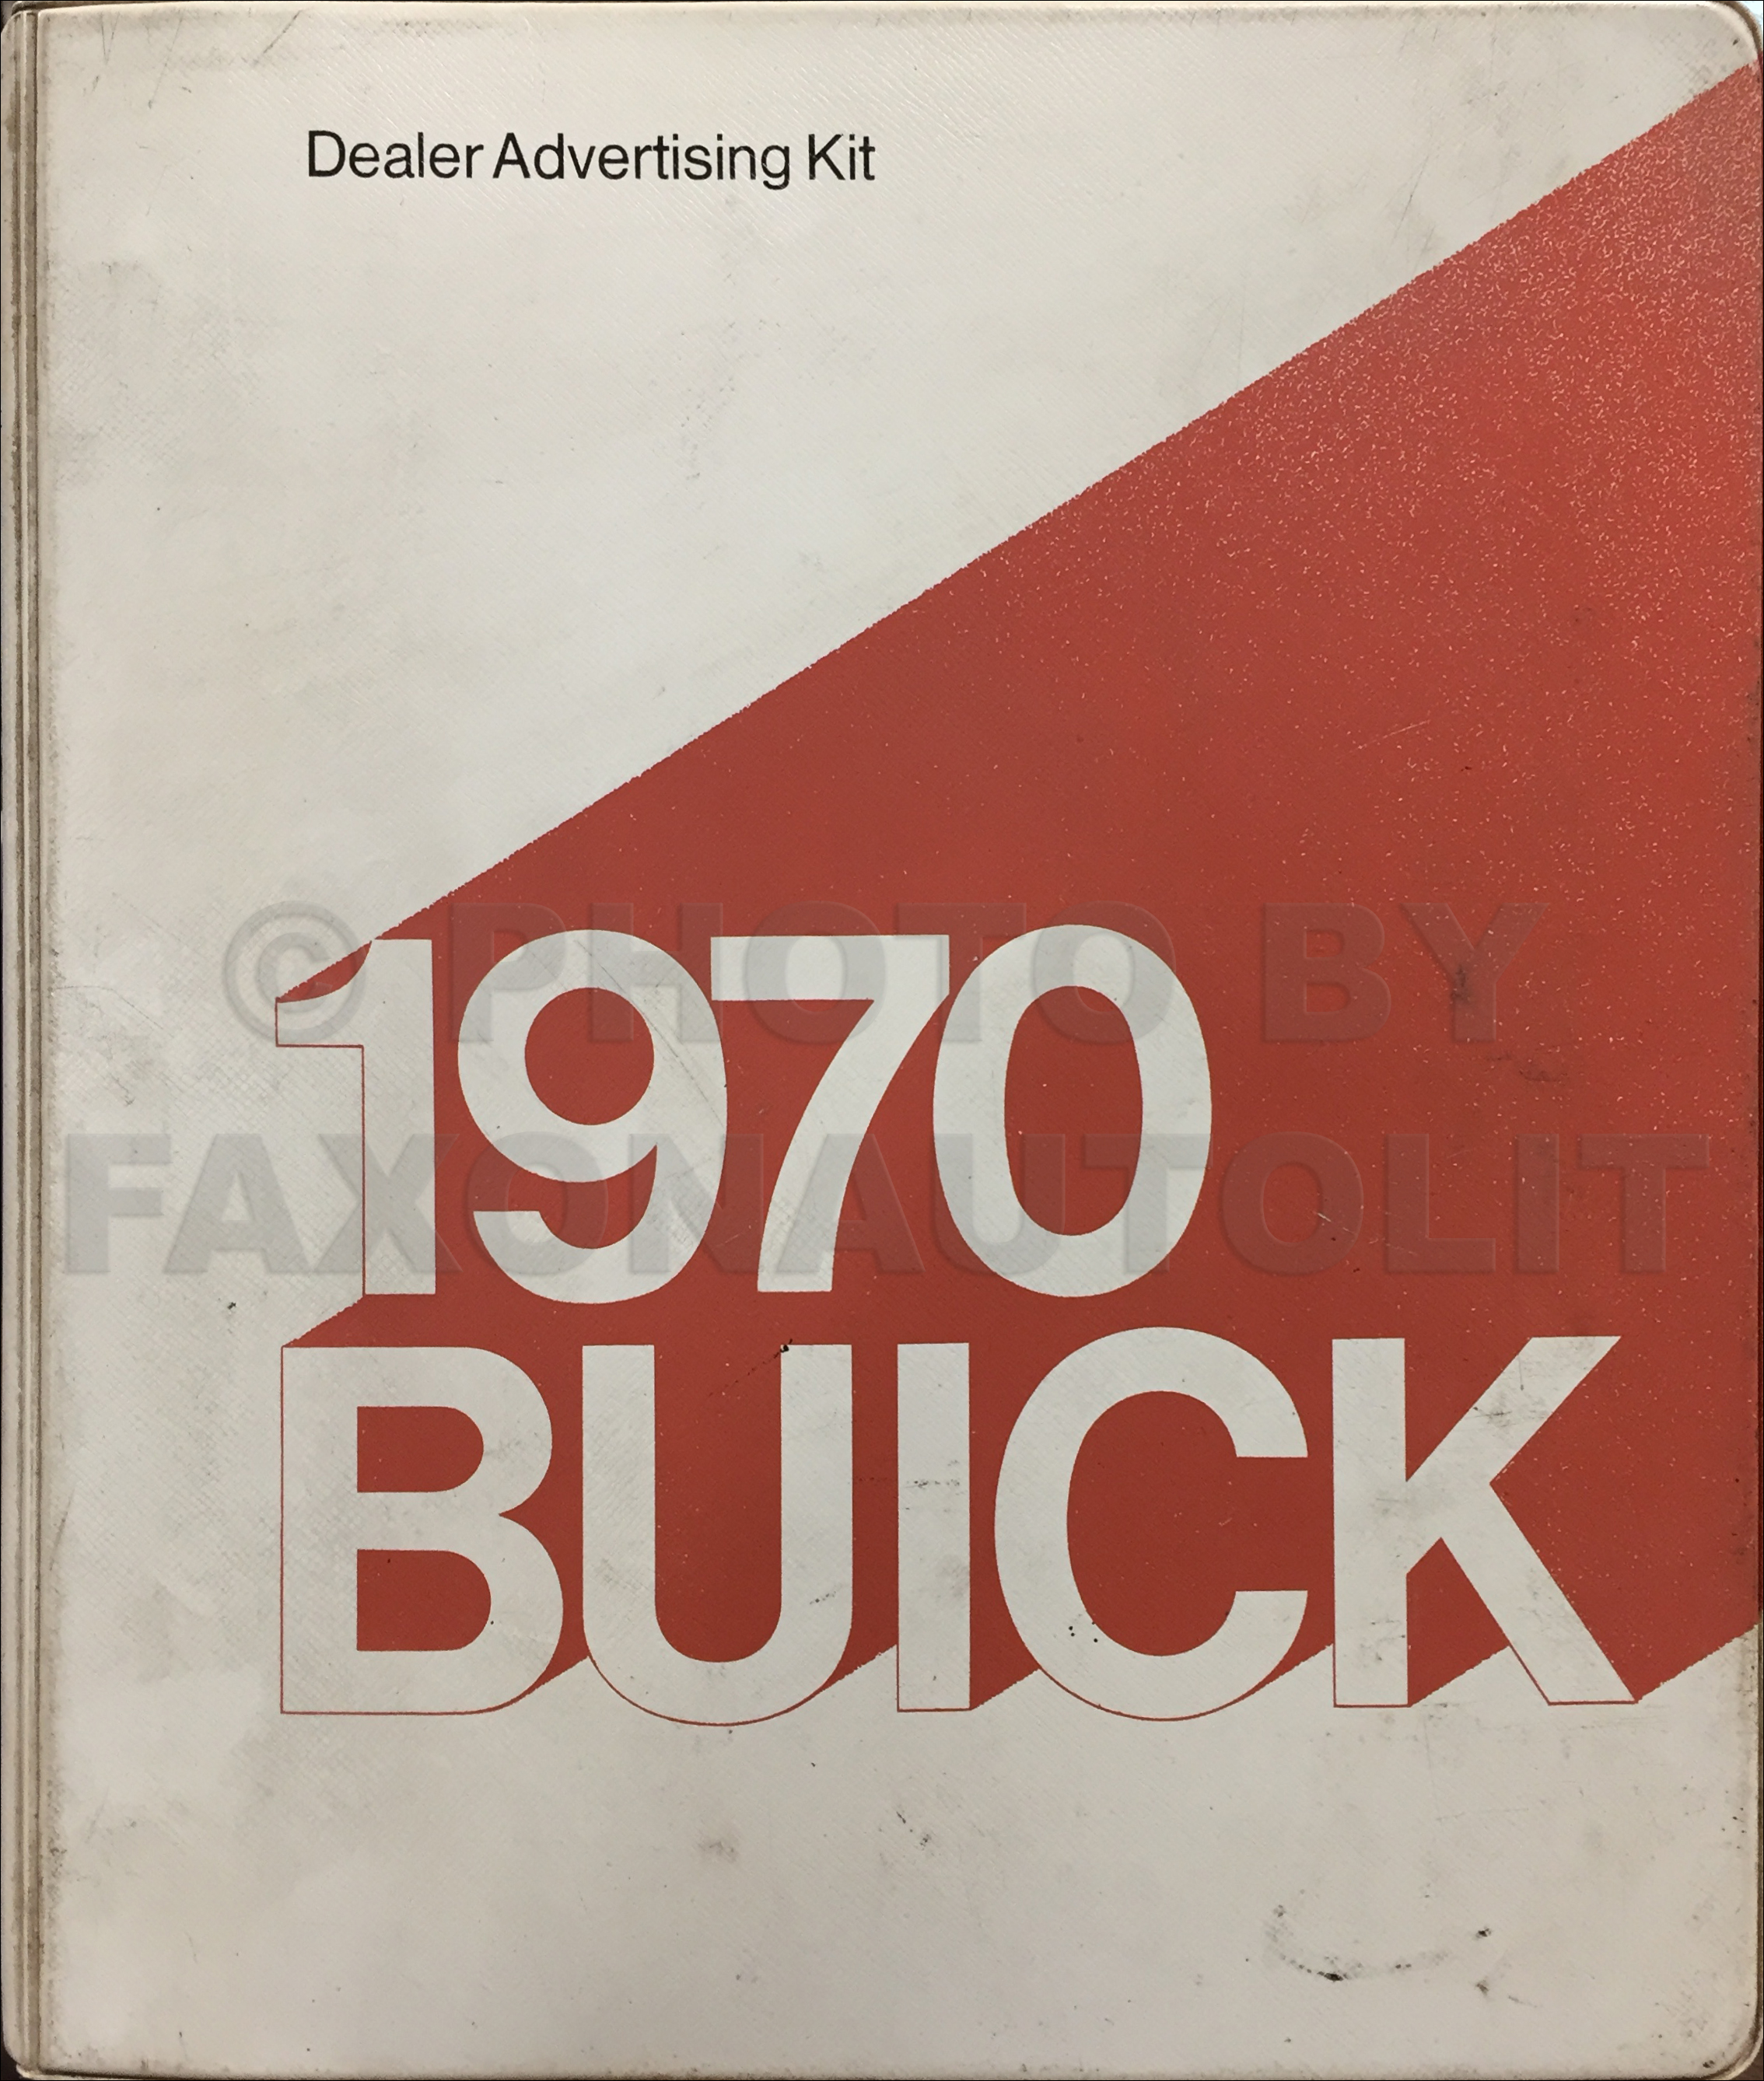 1970 Buick Dealer Advertising Planner Original